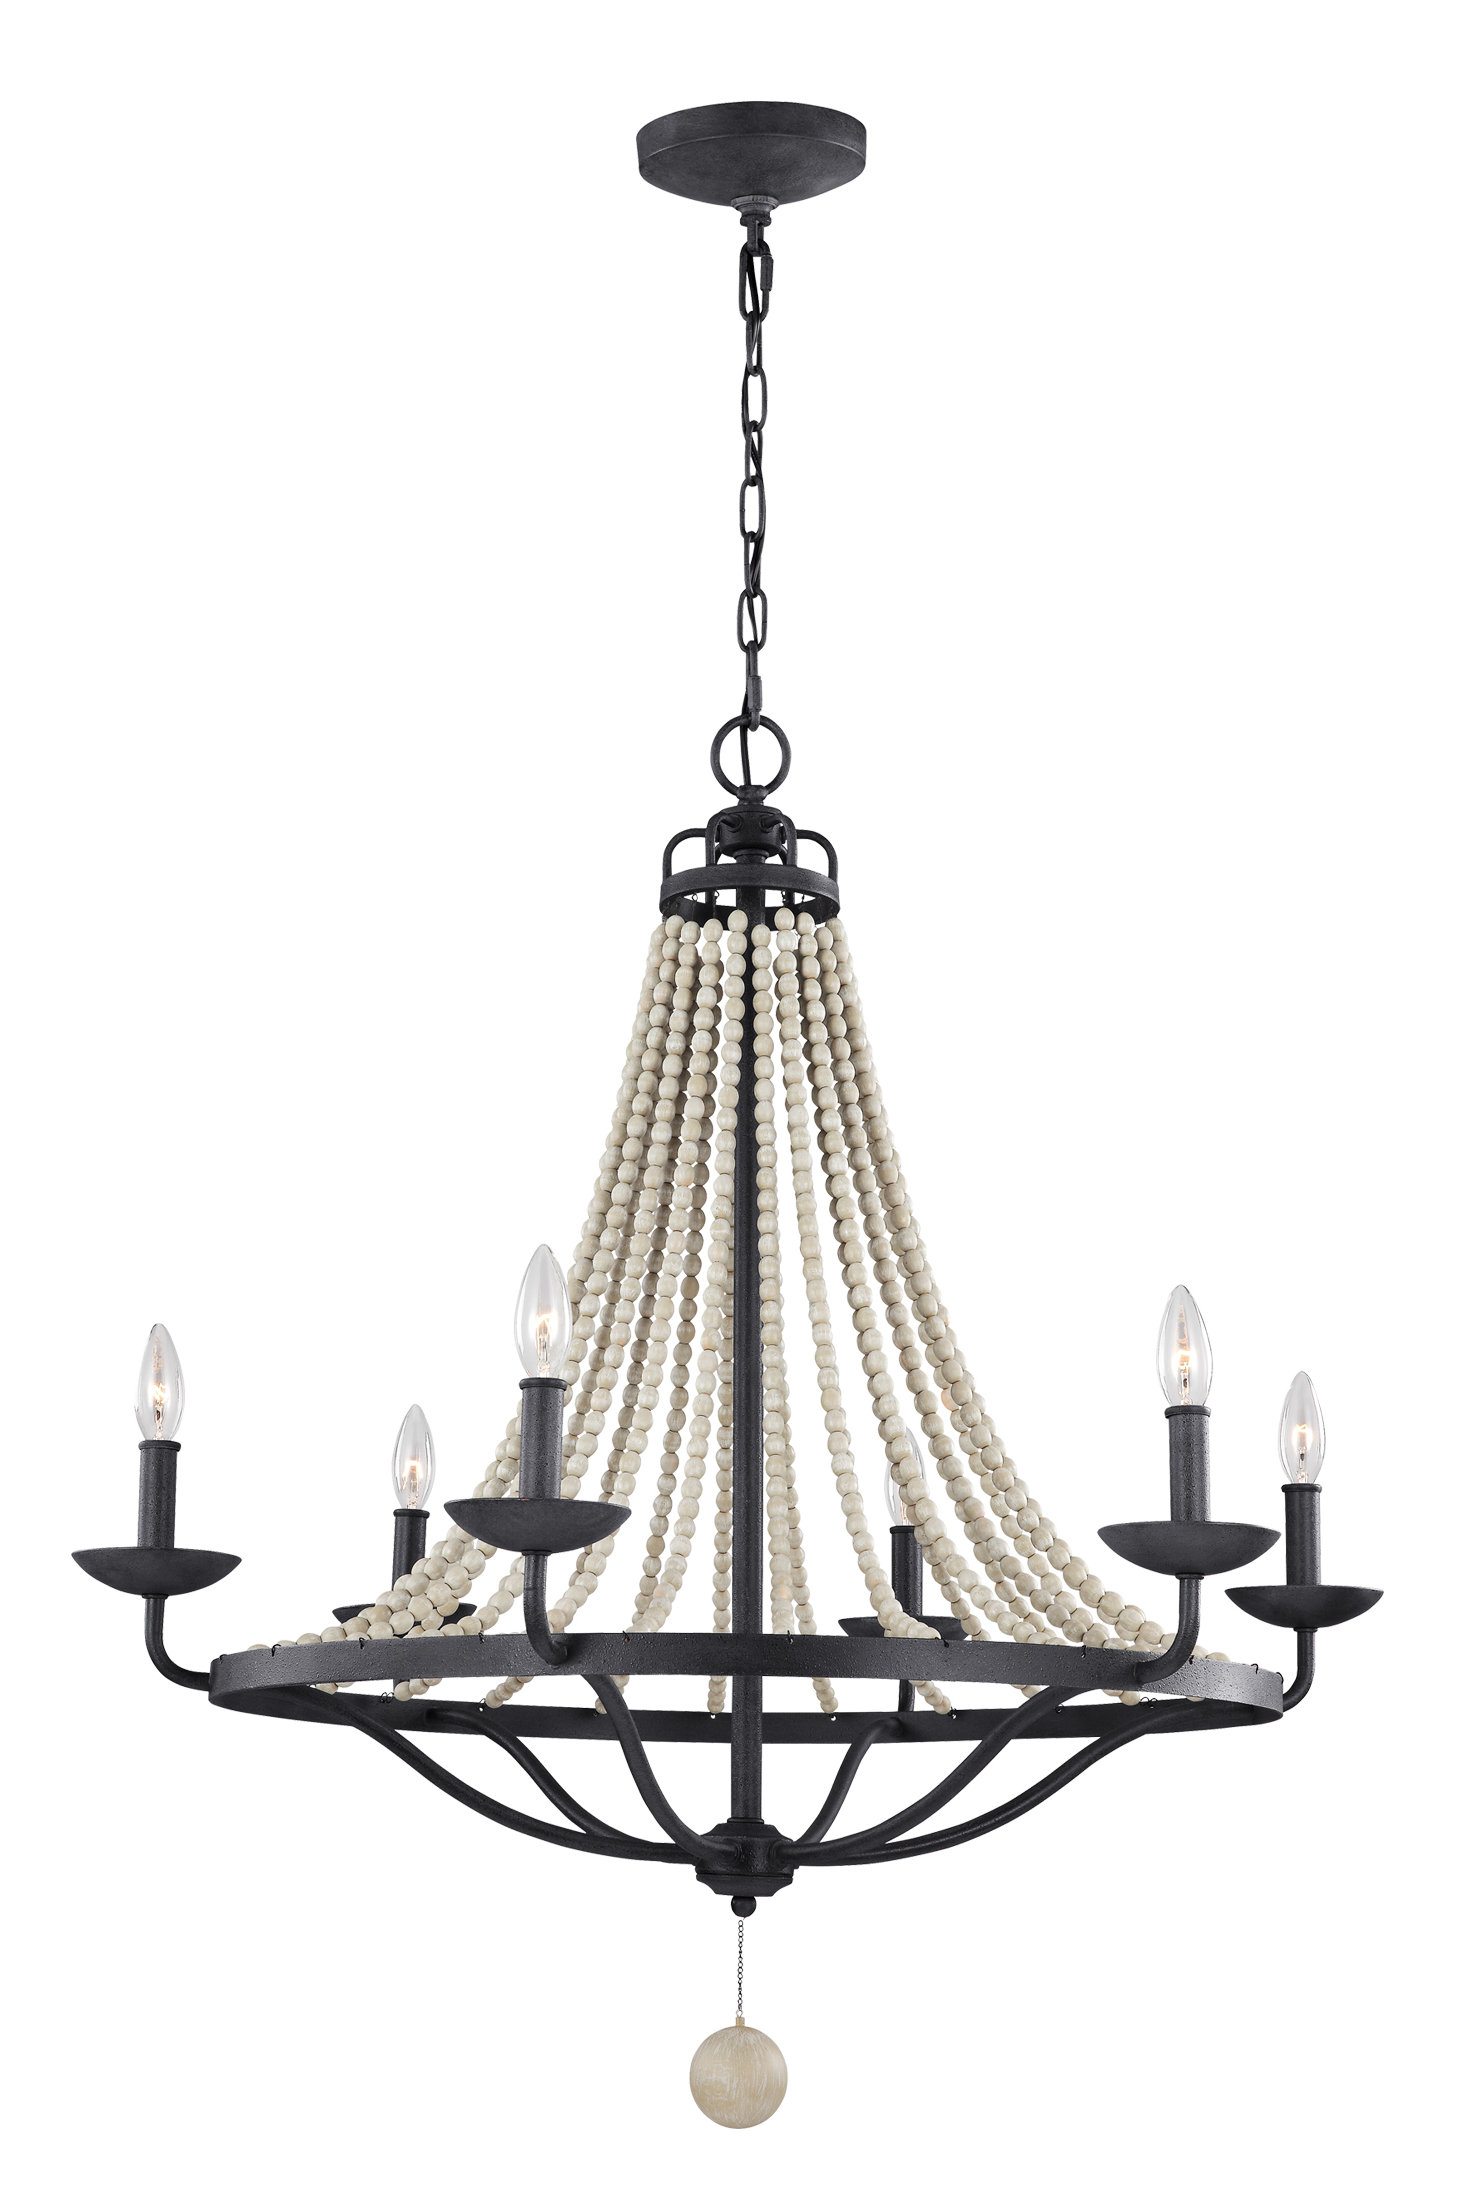 Diaz 6 Light Candle Style Chandeliers Intended For Favorite Granger 6 Light Empire Chandelier (View 23 of 25)